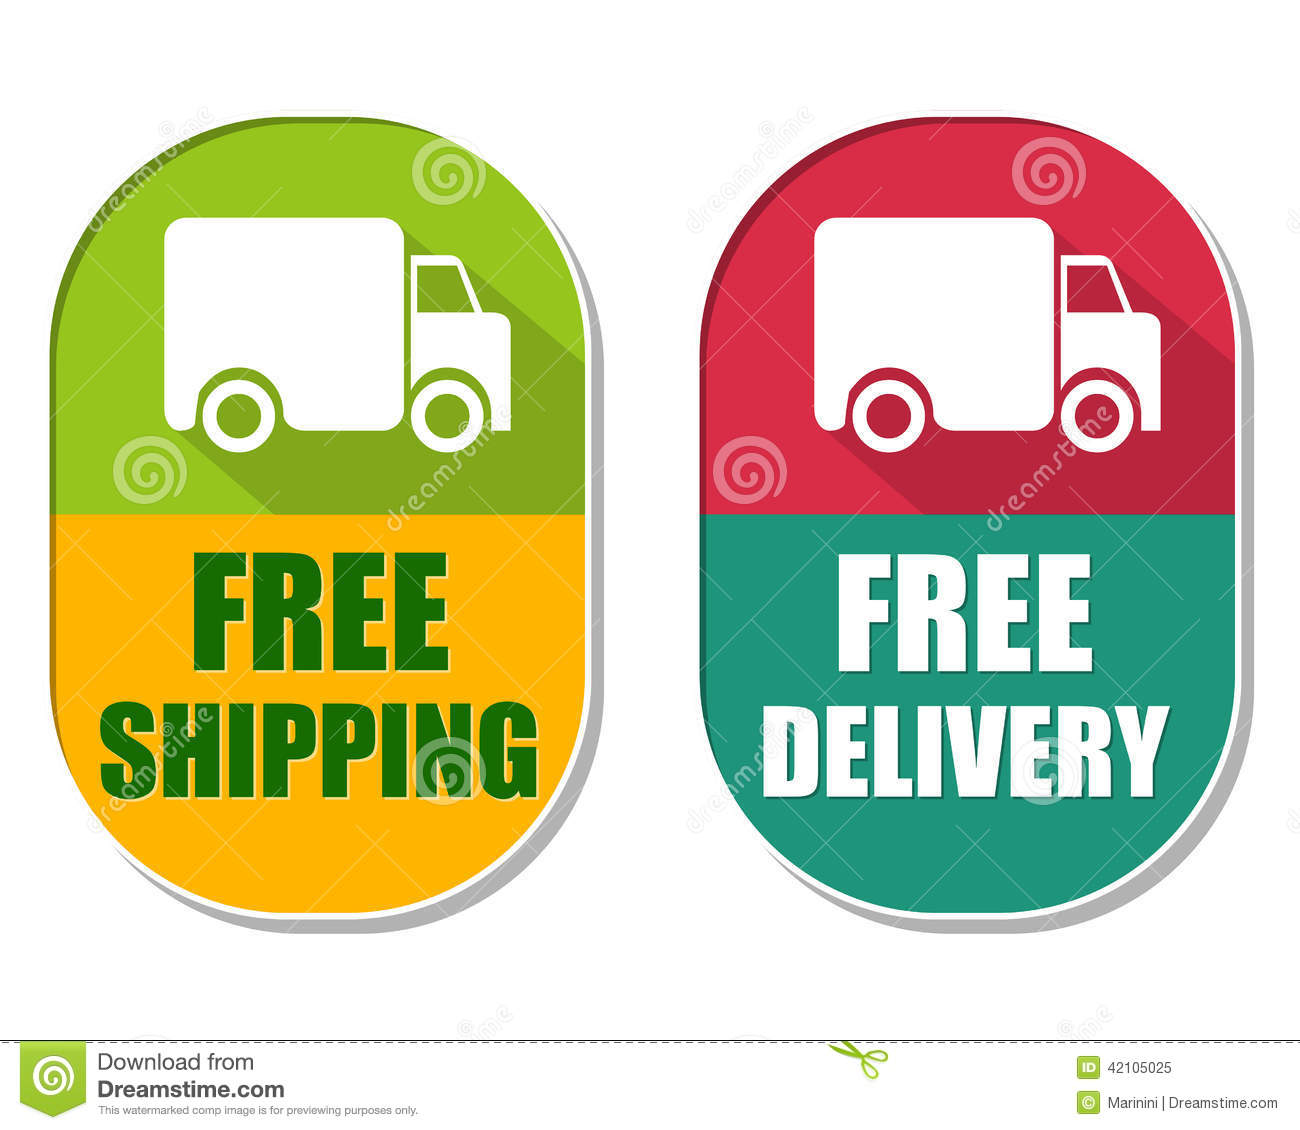 Shipping Delivery: Free Shipping And Delivery With Truck Sign, Two Elliptical